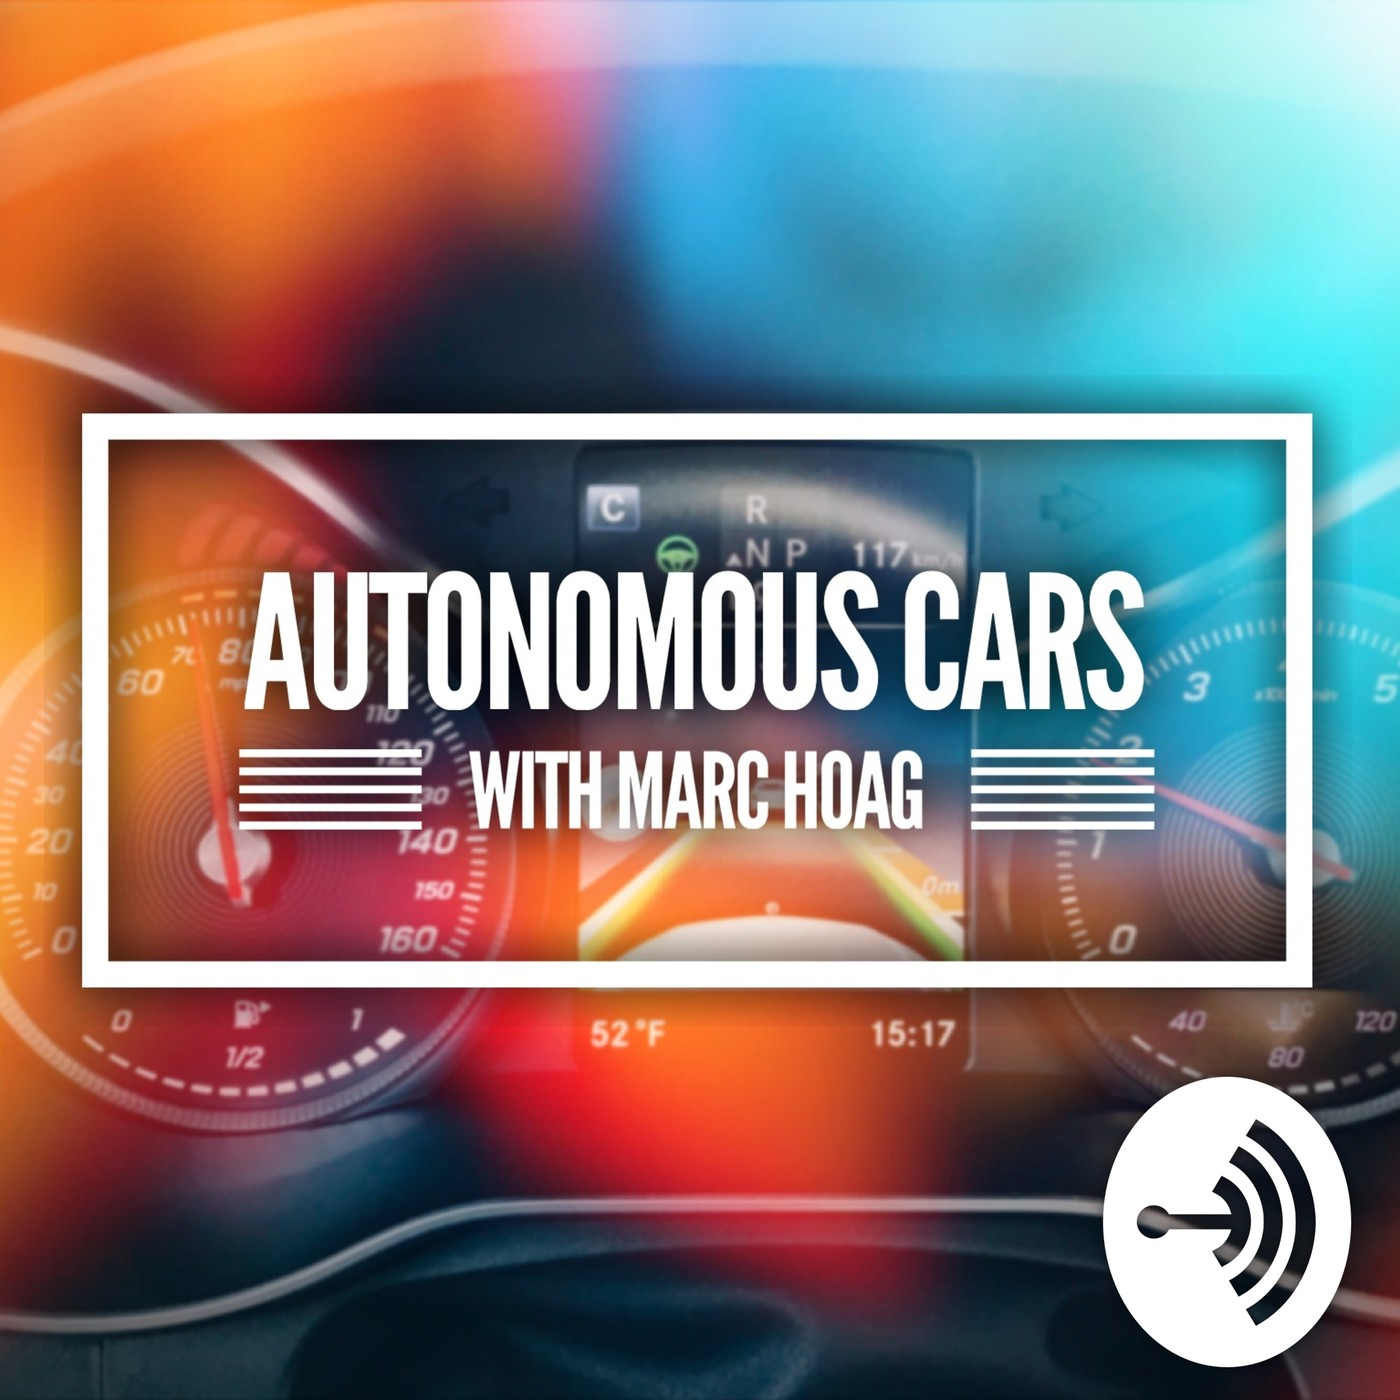 #166-Cruise goes driverless; Caterpillar ramps up AV tech; Ollie 2.0